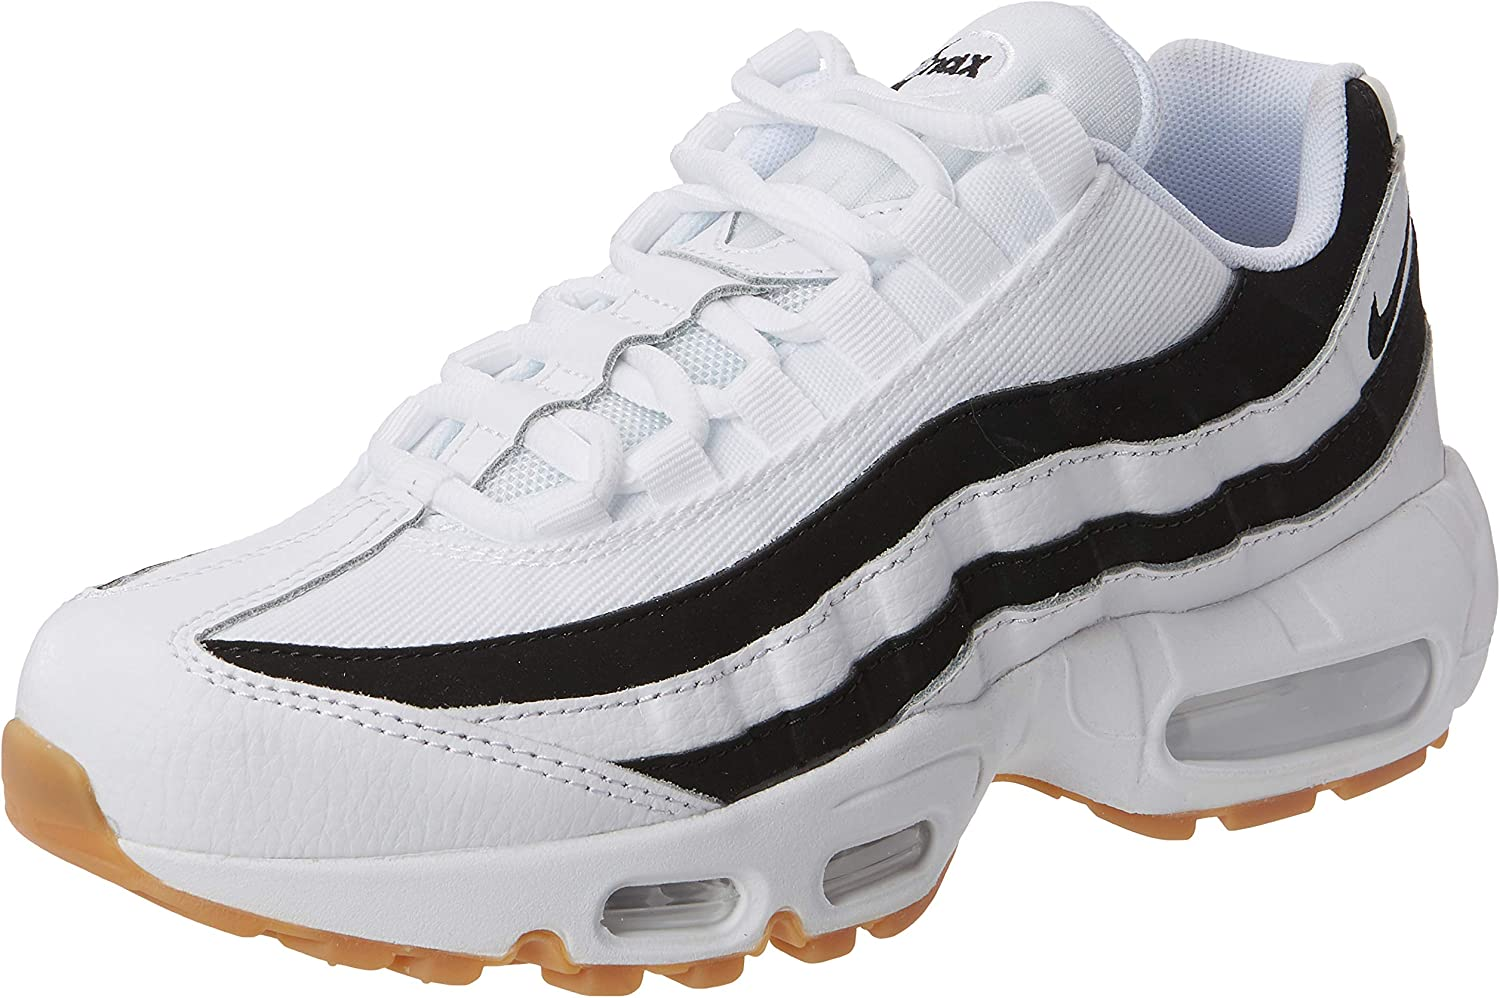 Nike Air Max 95, Chaussures de Running Entrainement Homme : Amazon ...